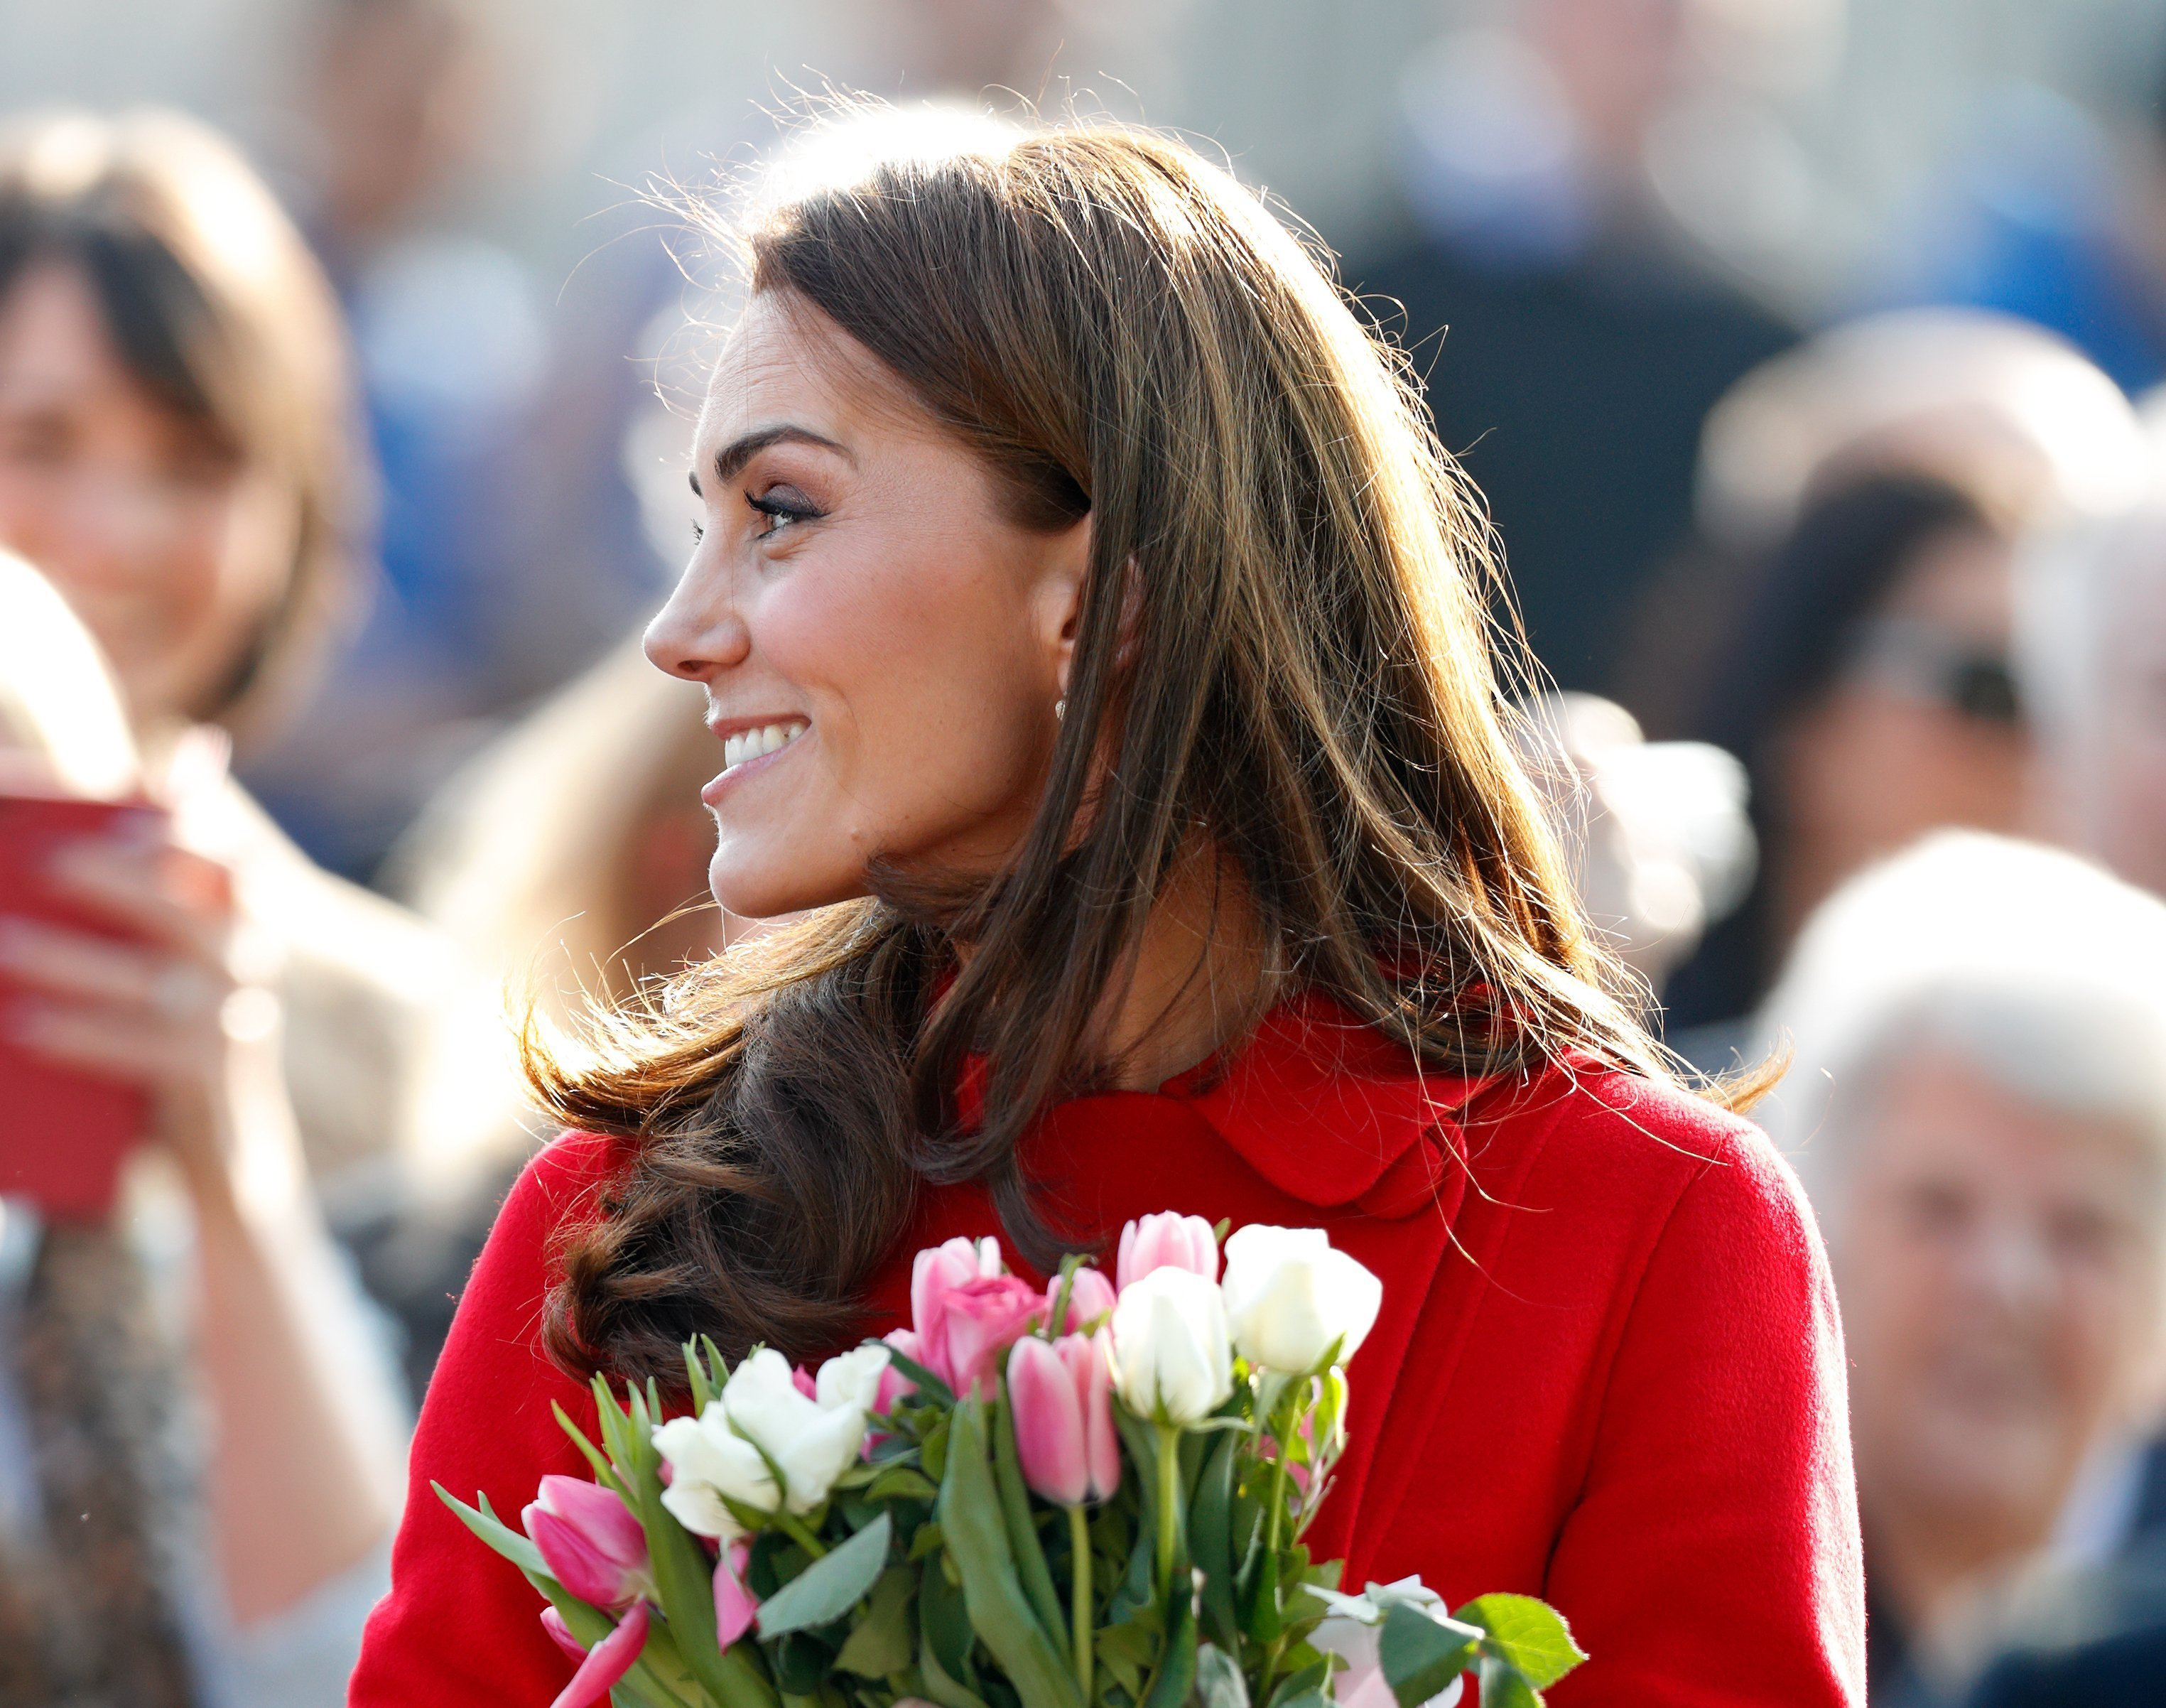 Kate Middleton visiting Northern Ireland in March 2019 | Photo: Getty Images